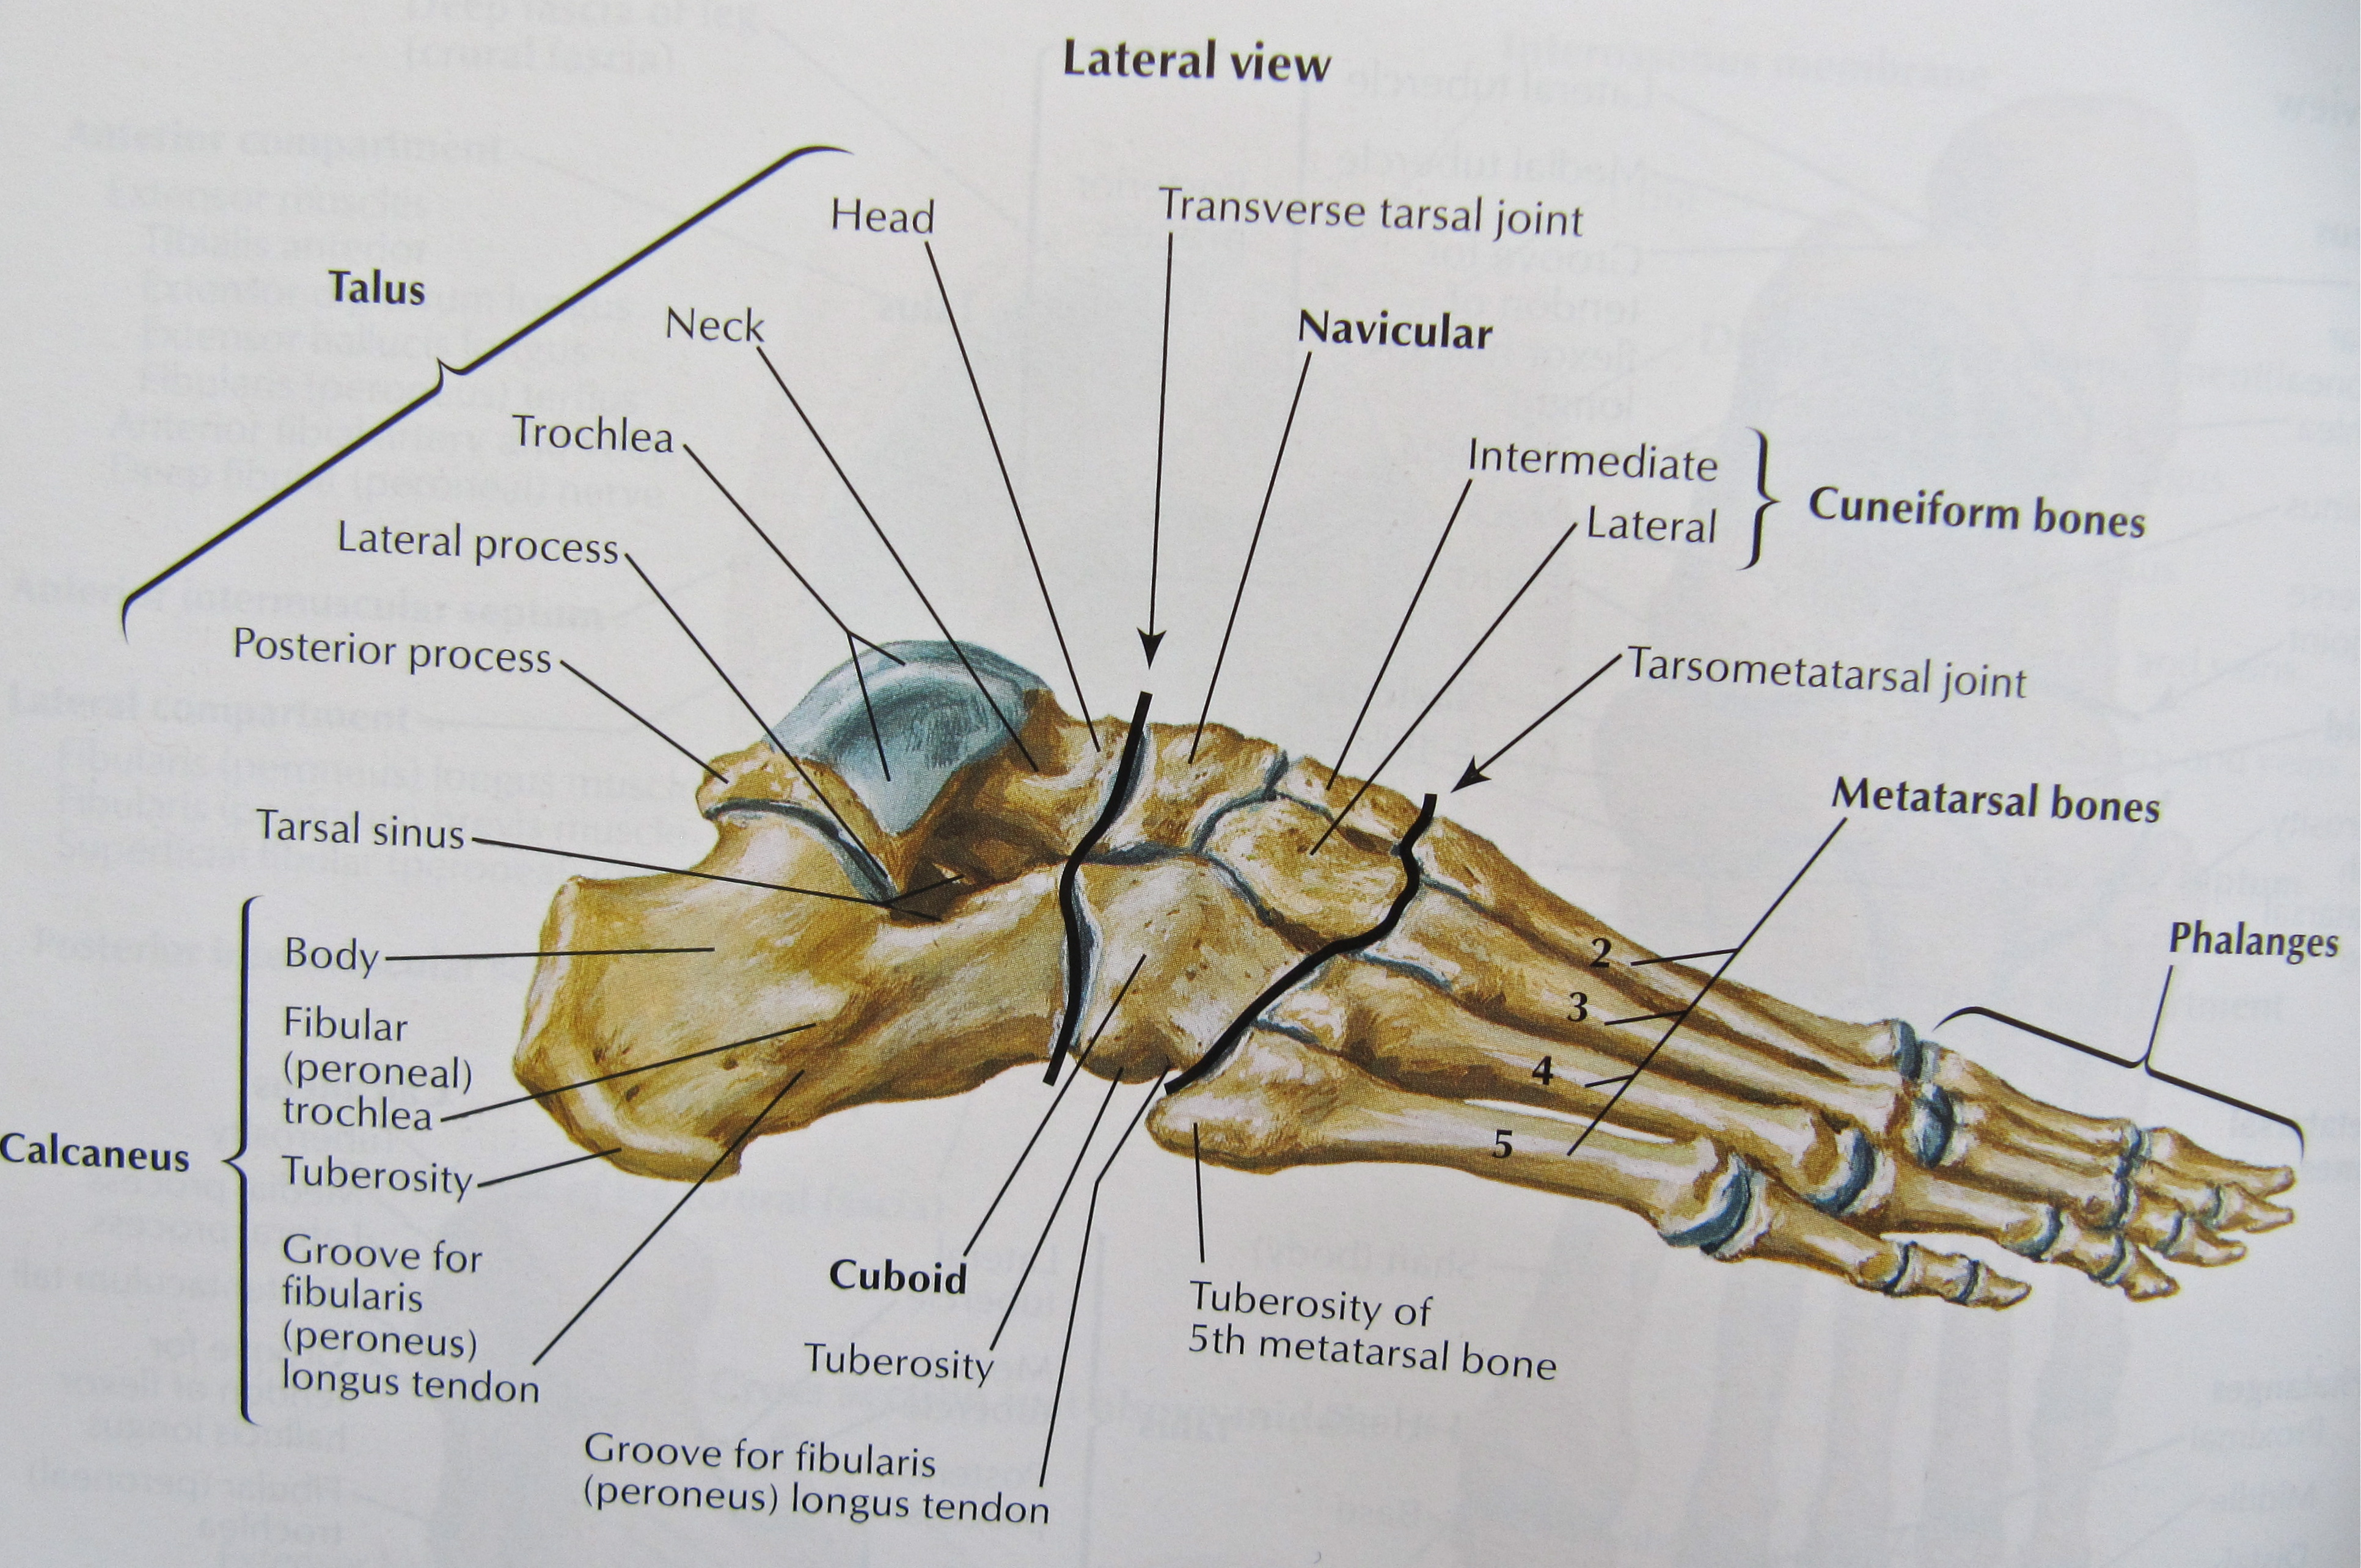 Notes On Anatomy And Physiology Using Imagery To Relax